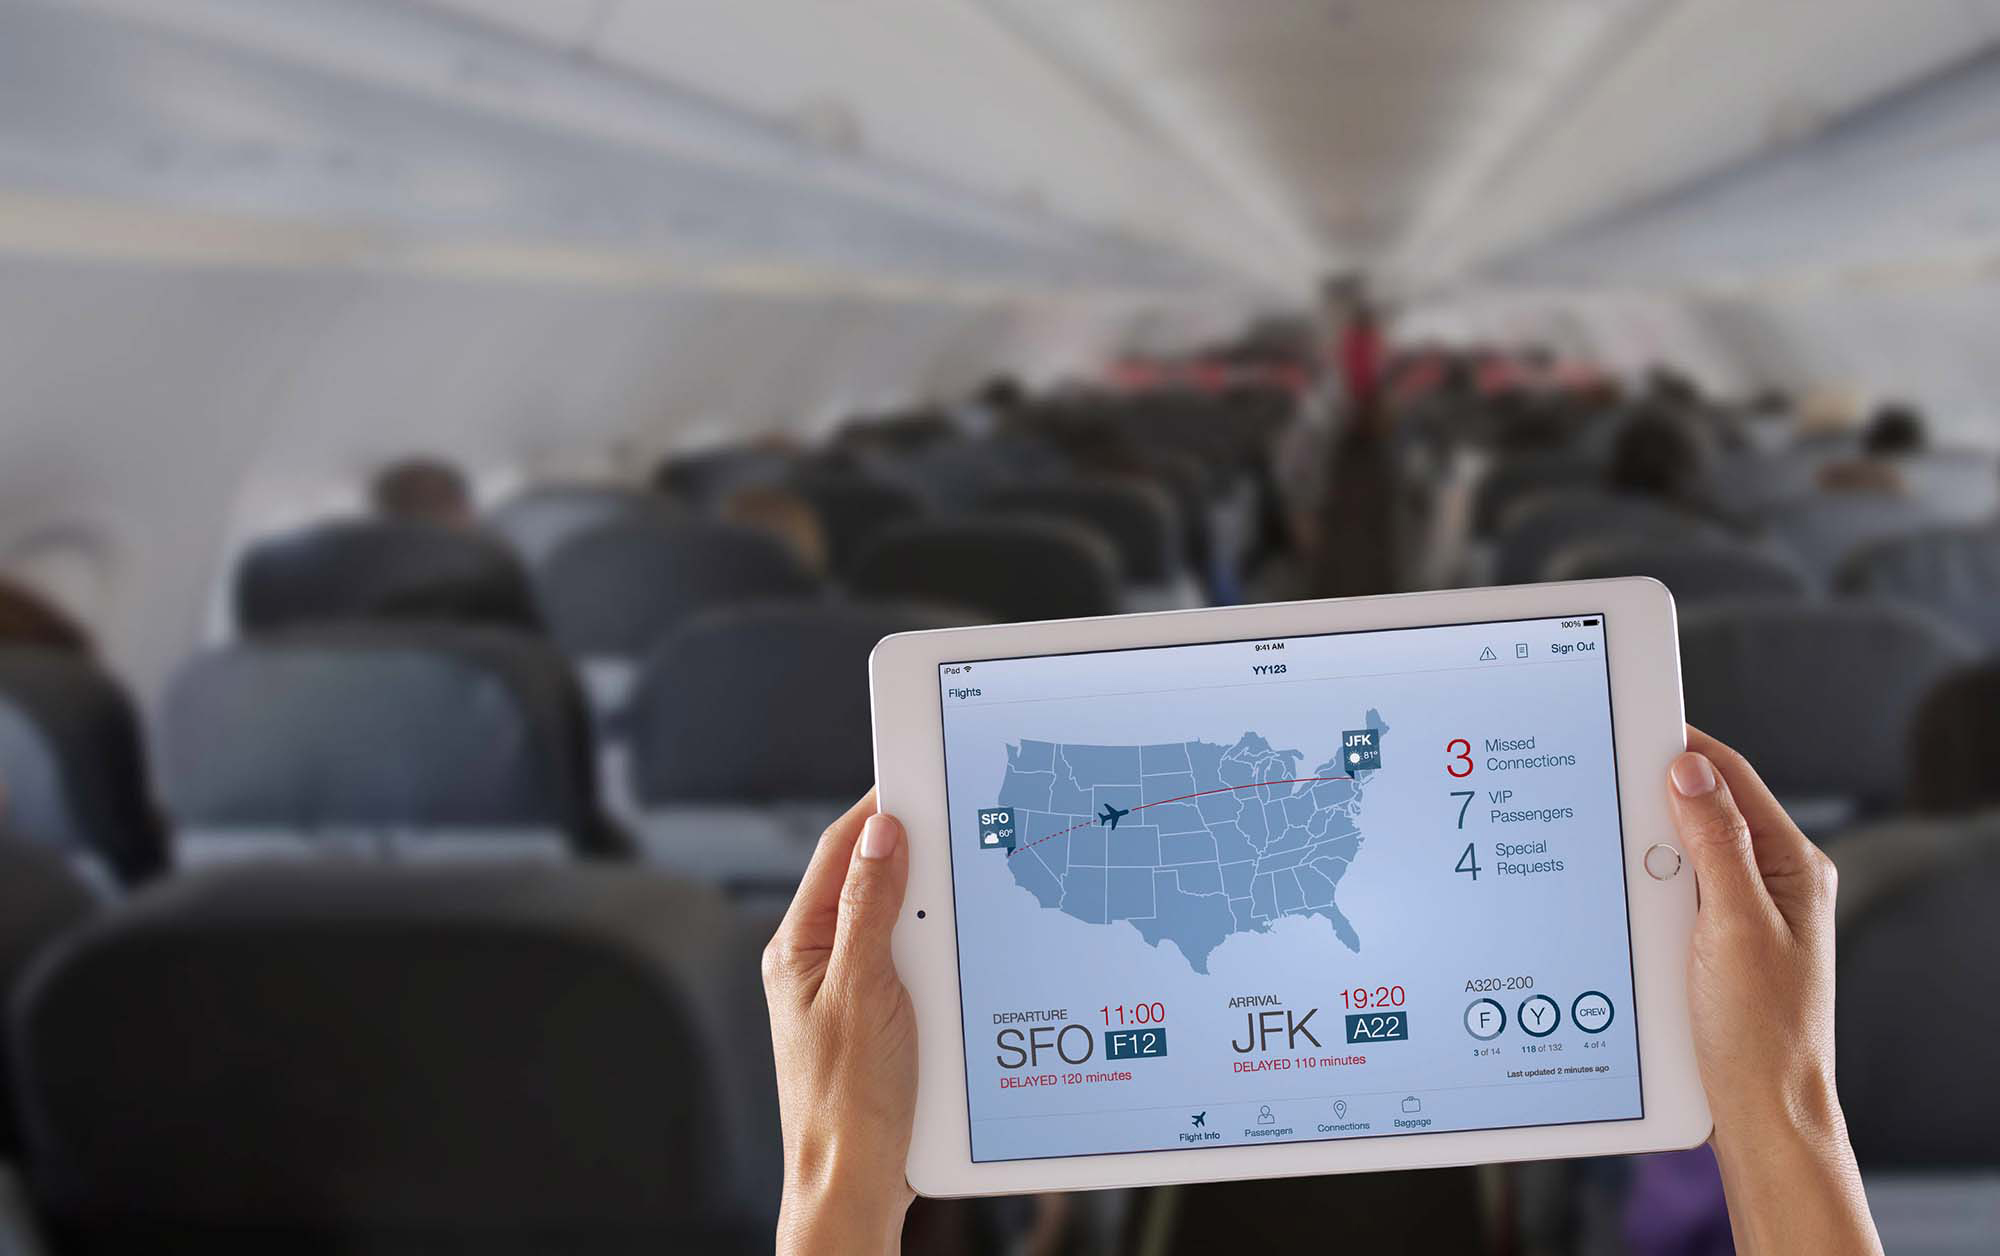 One of the apps developed by Apple and IBM in December, aimed at the airline industry.